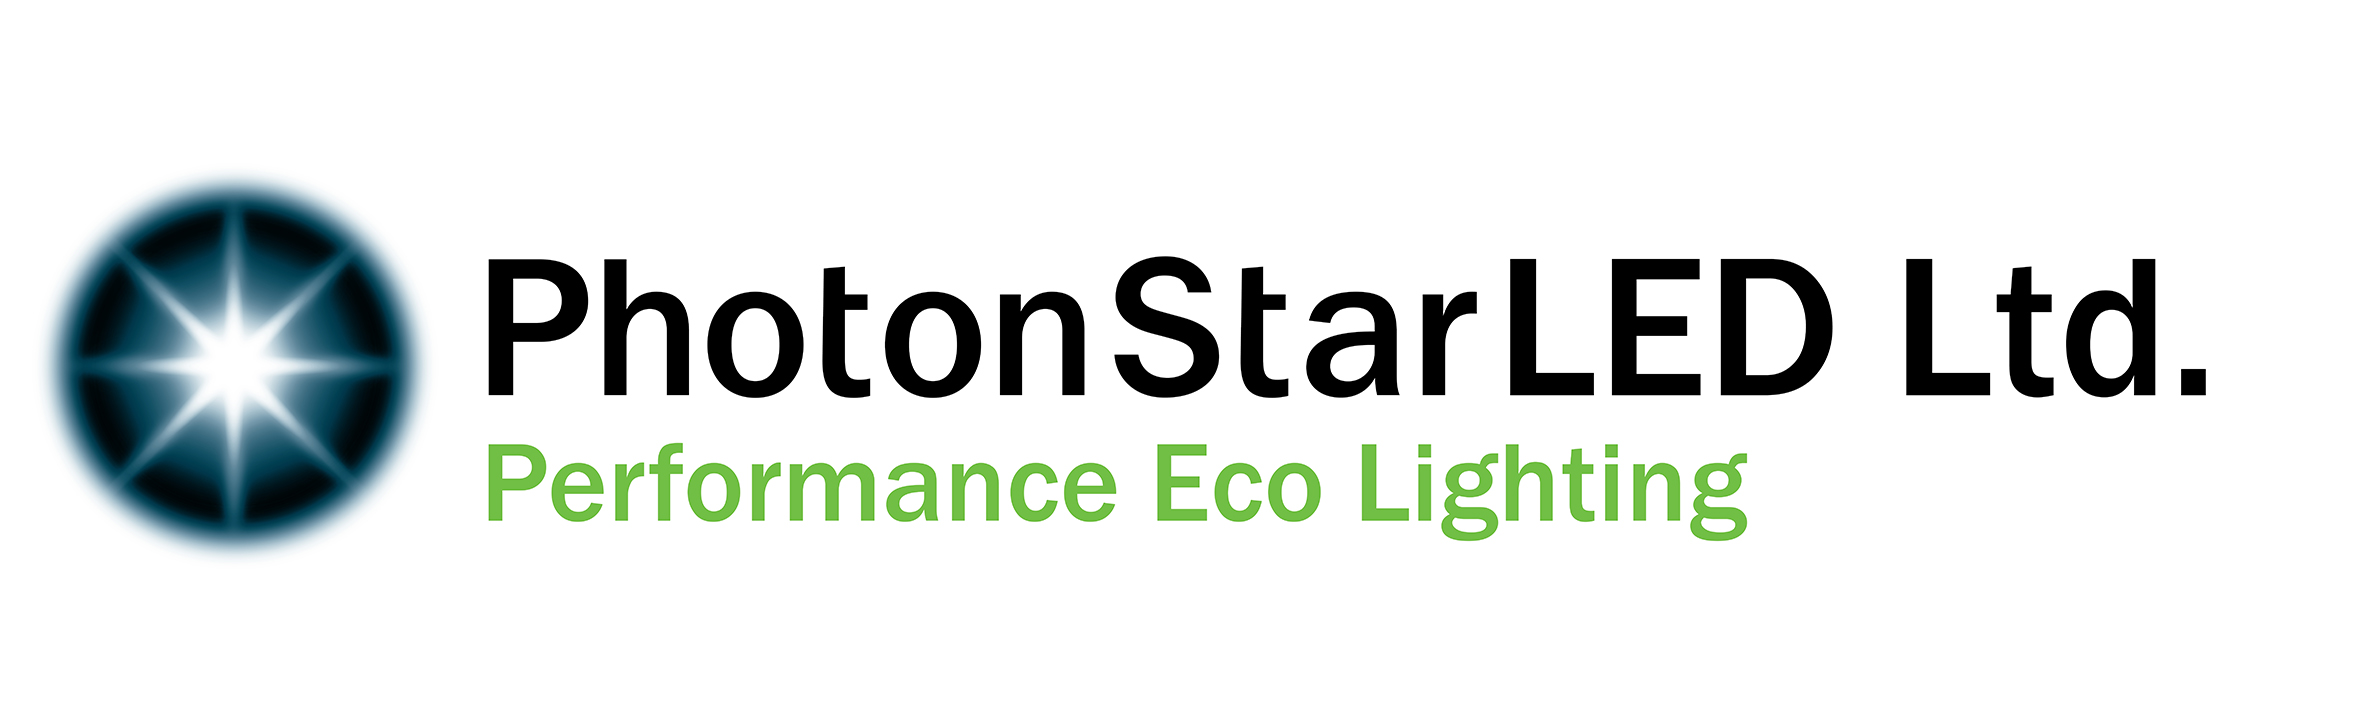 PhotonStar LED Ltd Testimonial